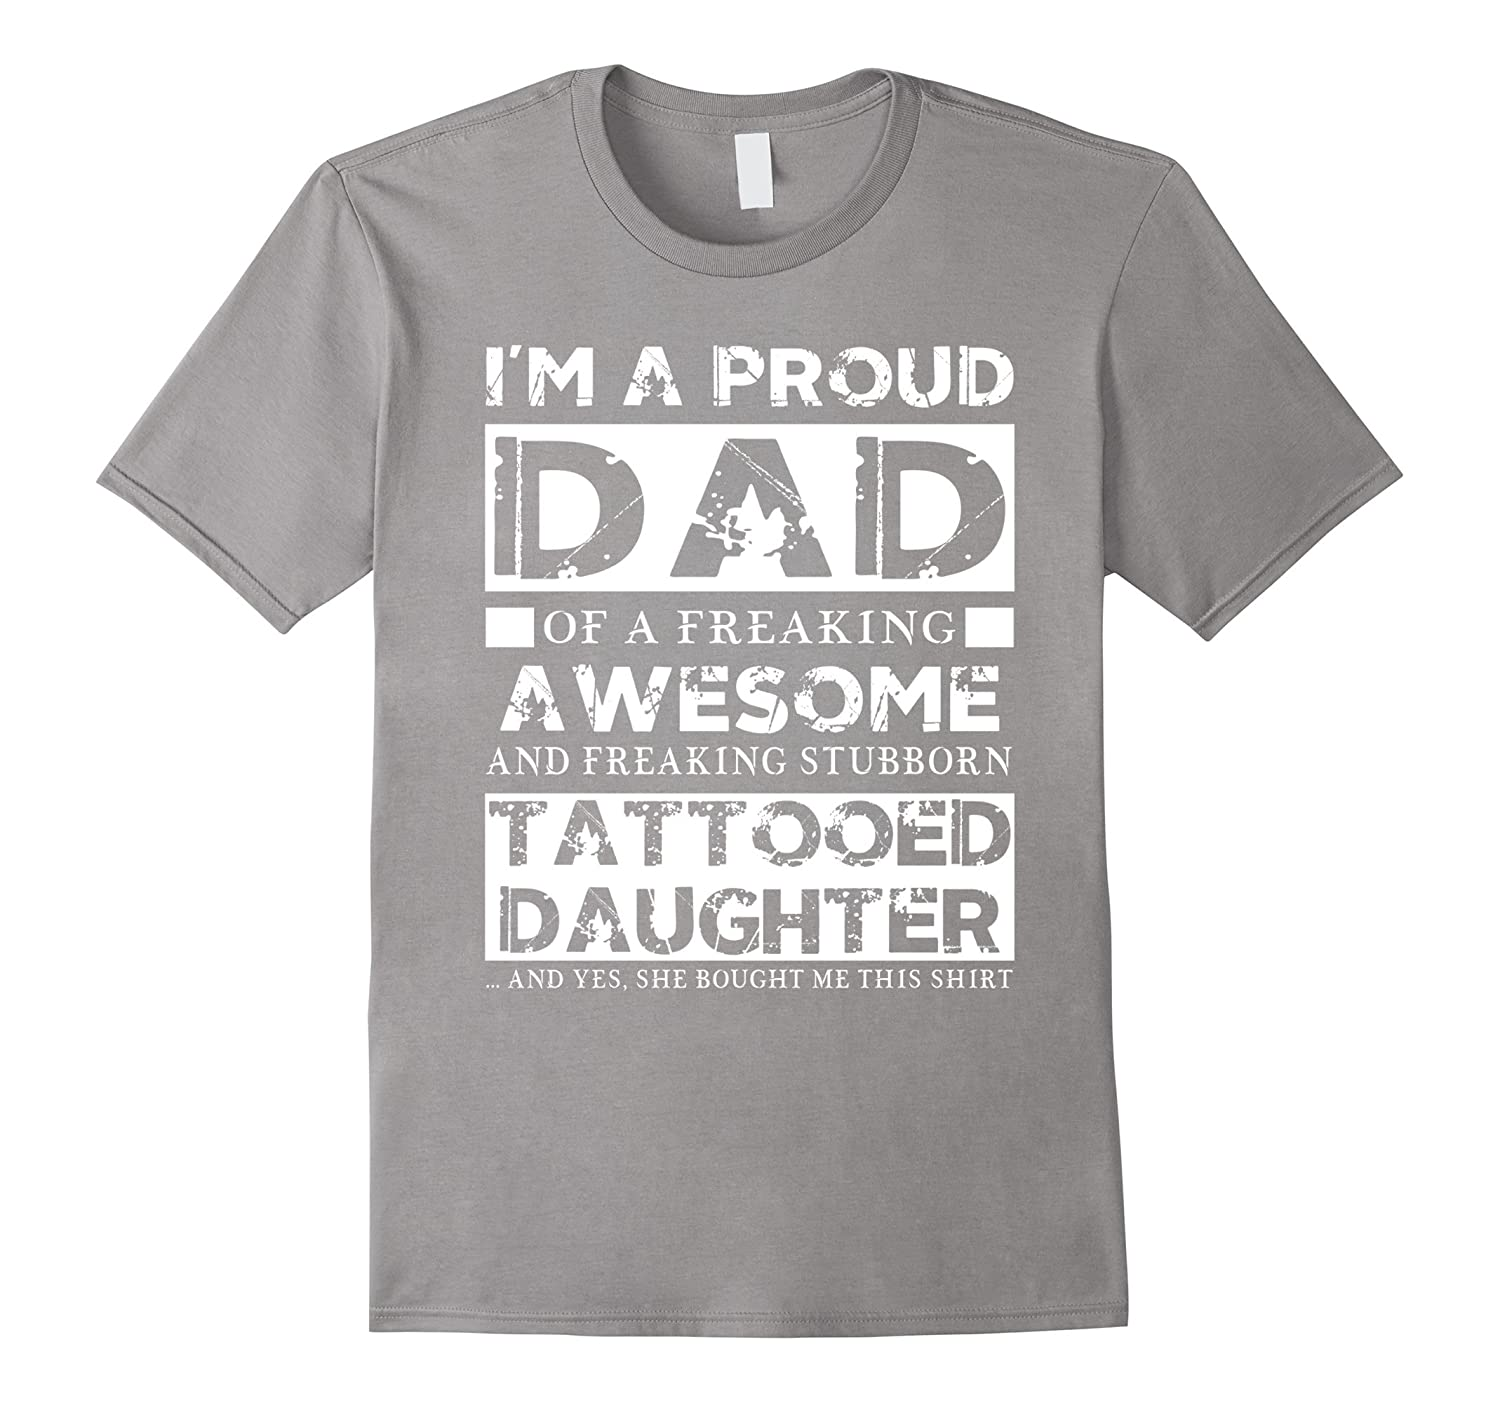 Mens Im A Proud Dad Of A Freaking Awesome Tattooed Daughter tee shirt Proud Dad T-Shirt-TD